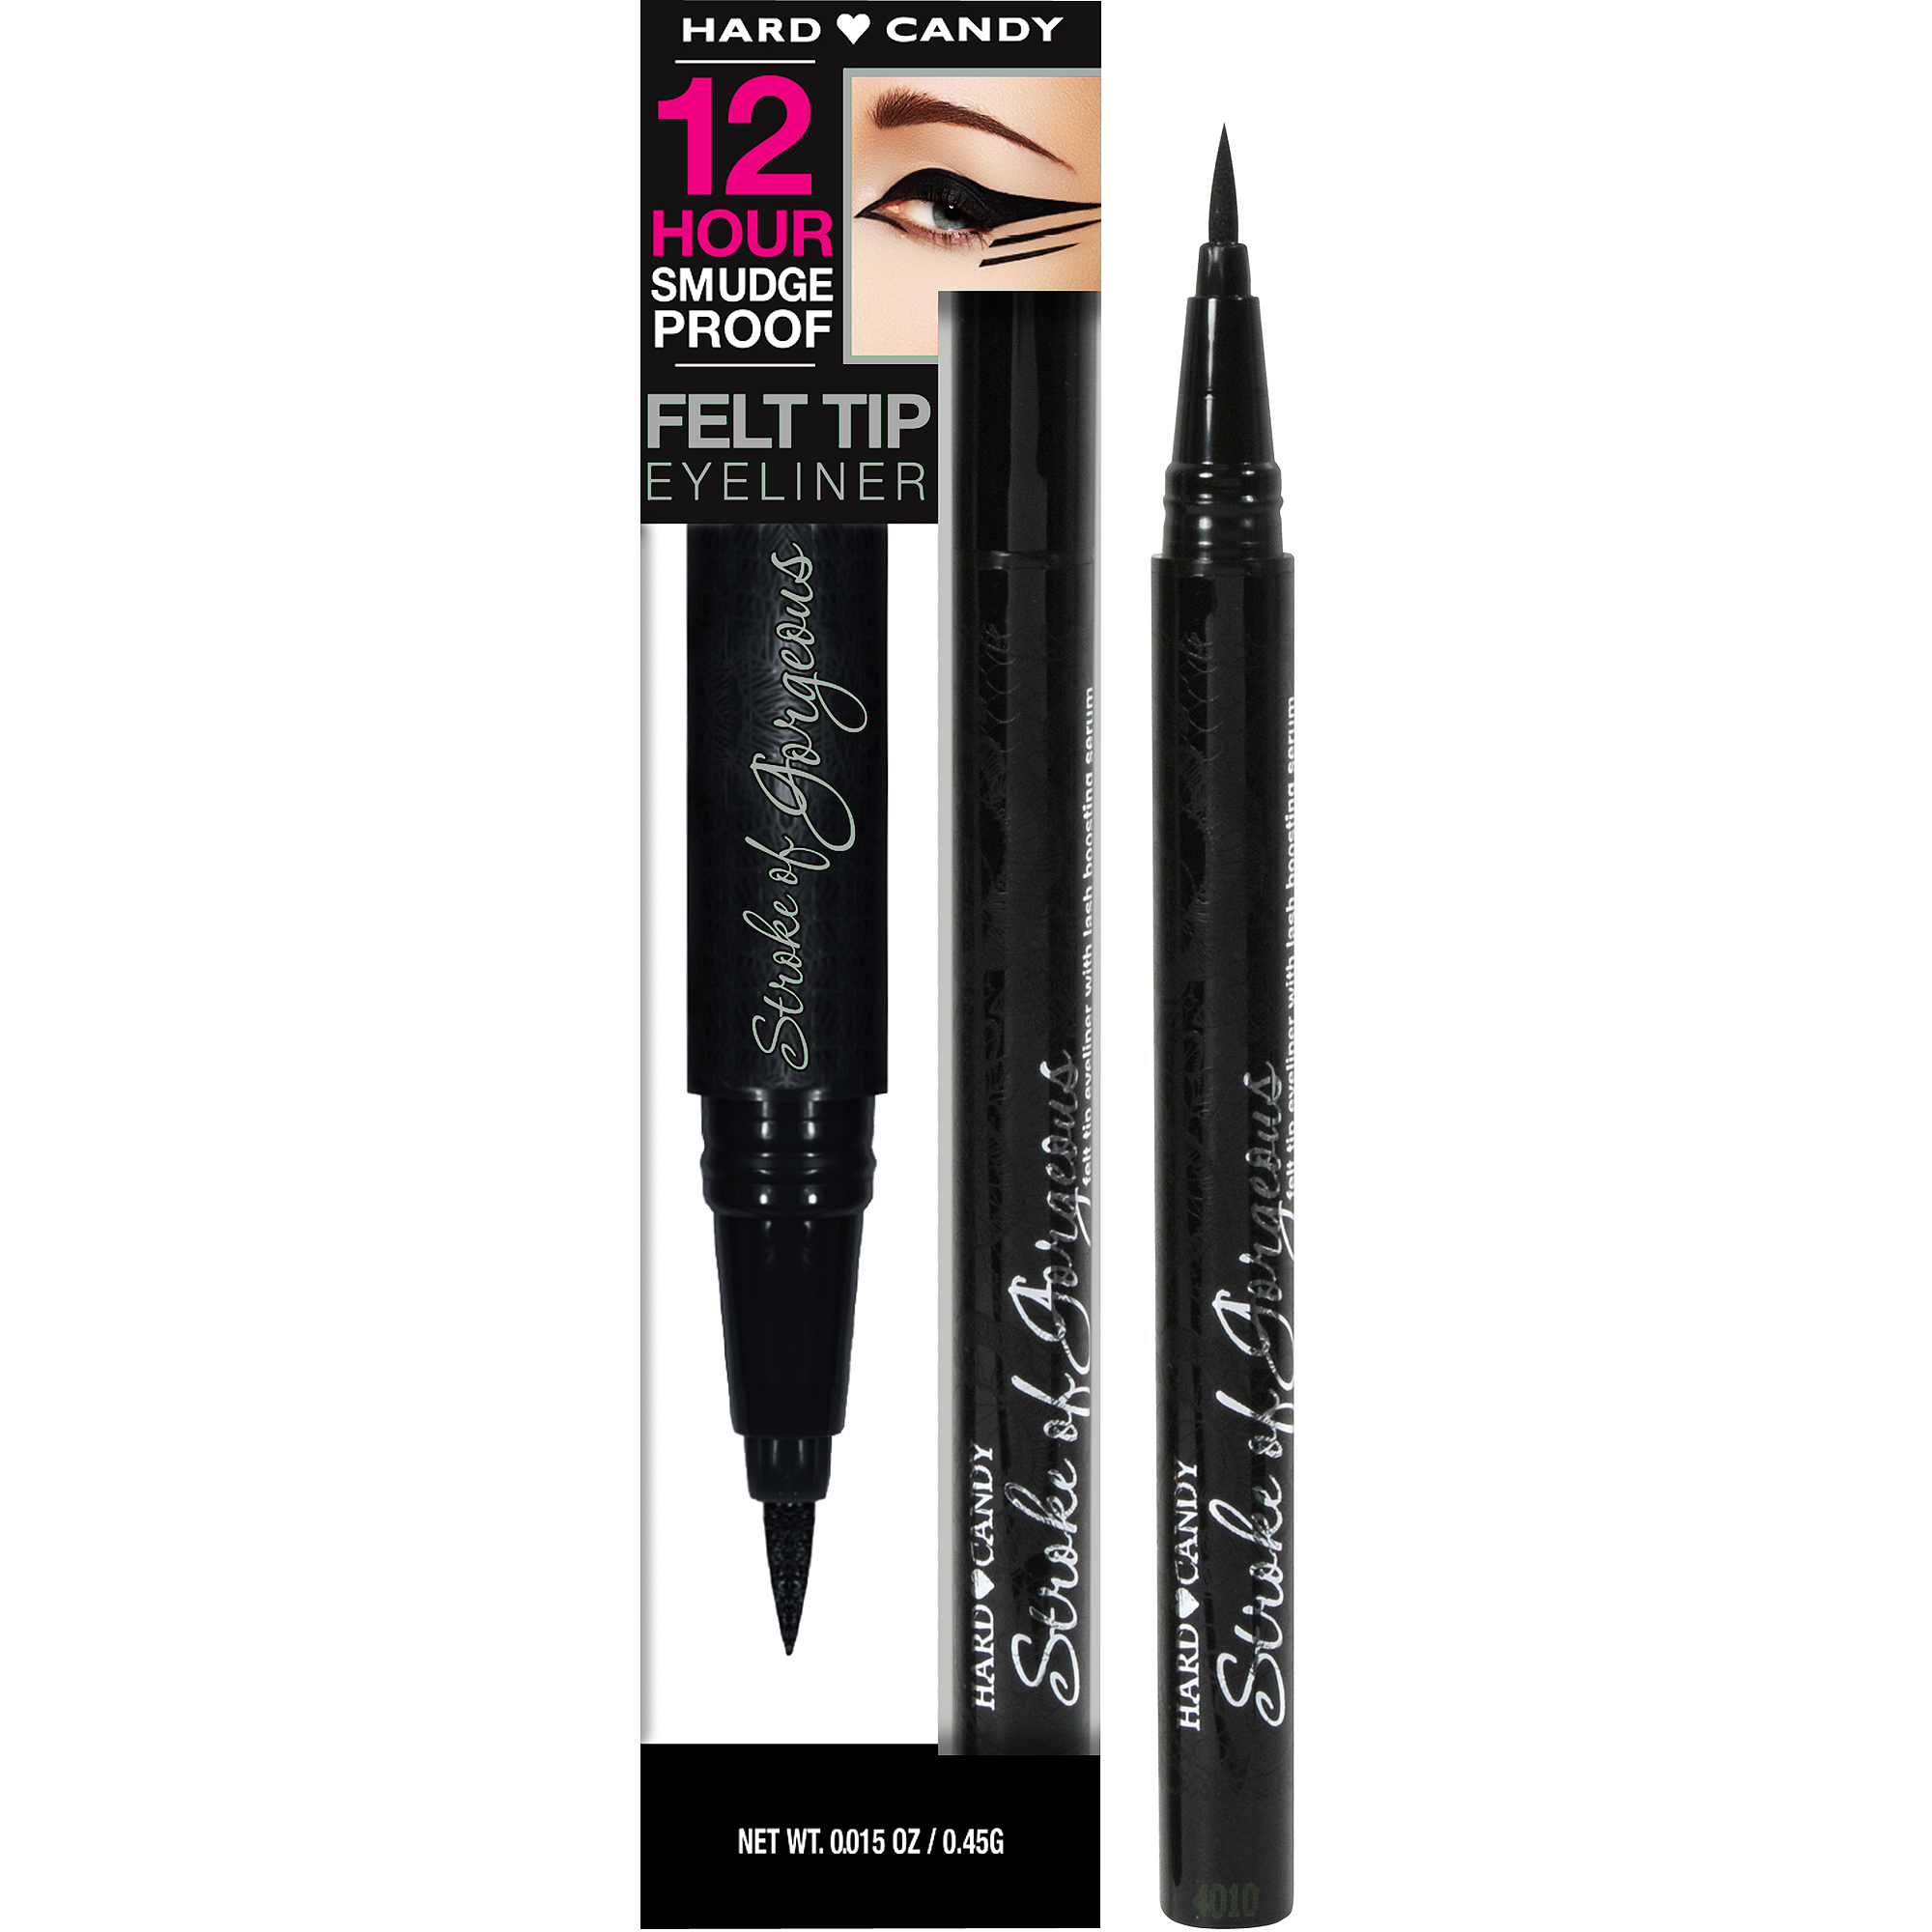 Hard Candy Stroke of Gorgeous Felt Tip Eyeliner, 0.015 oz